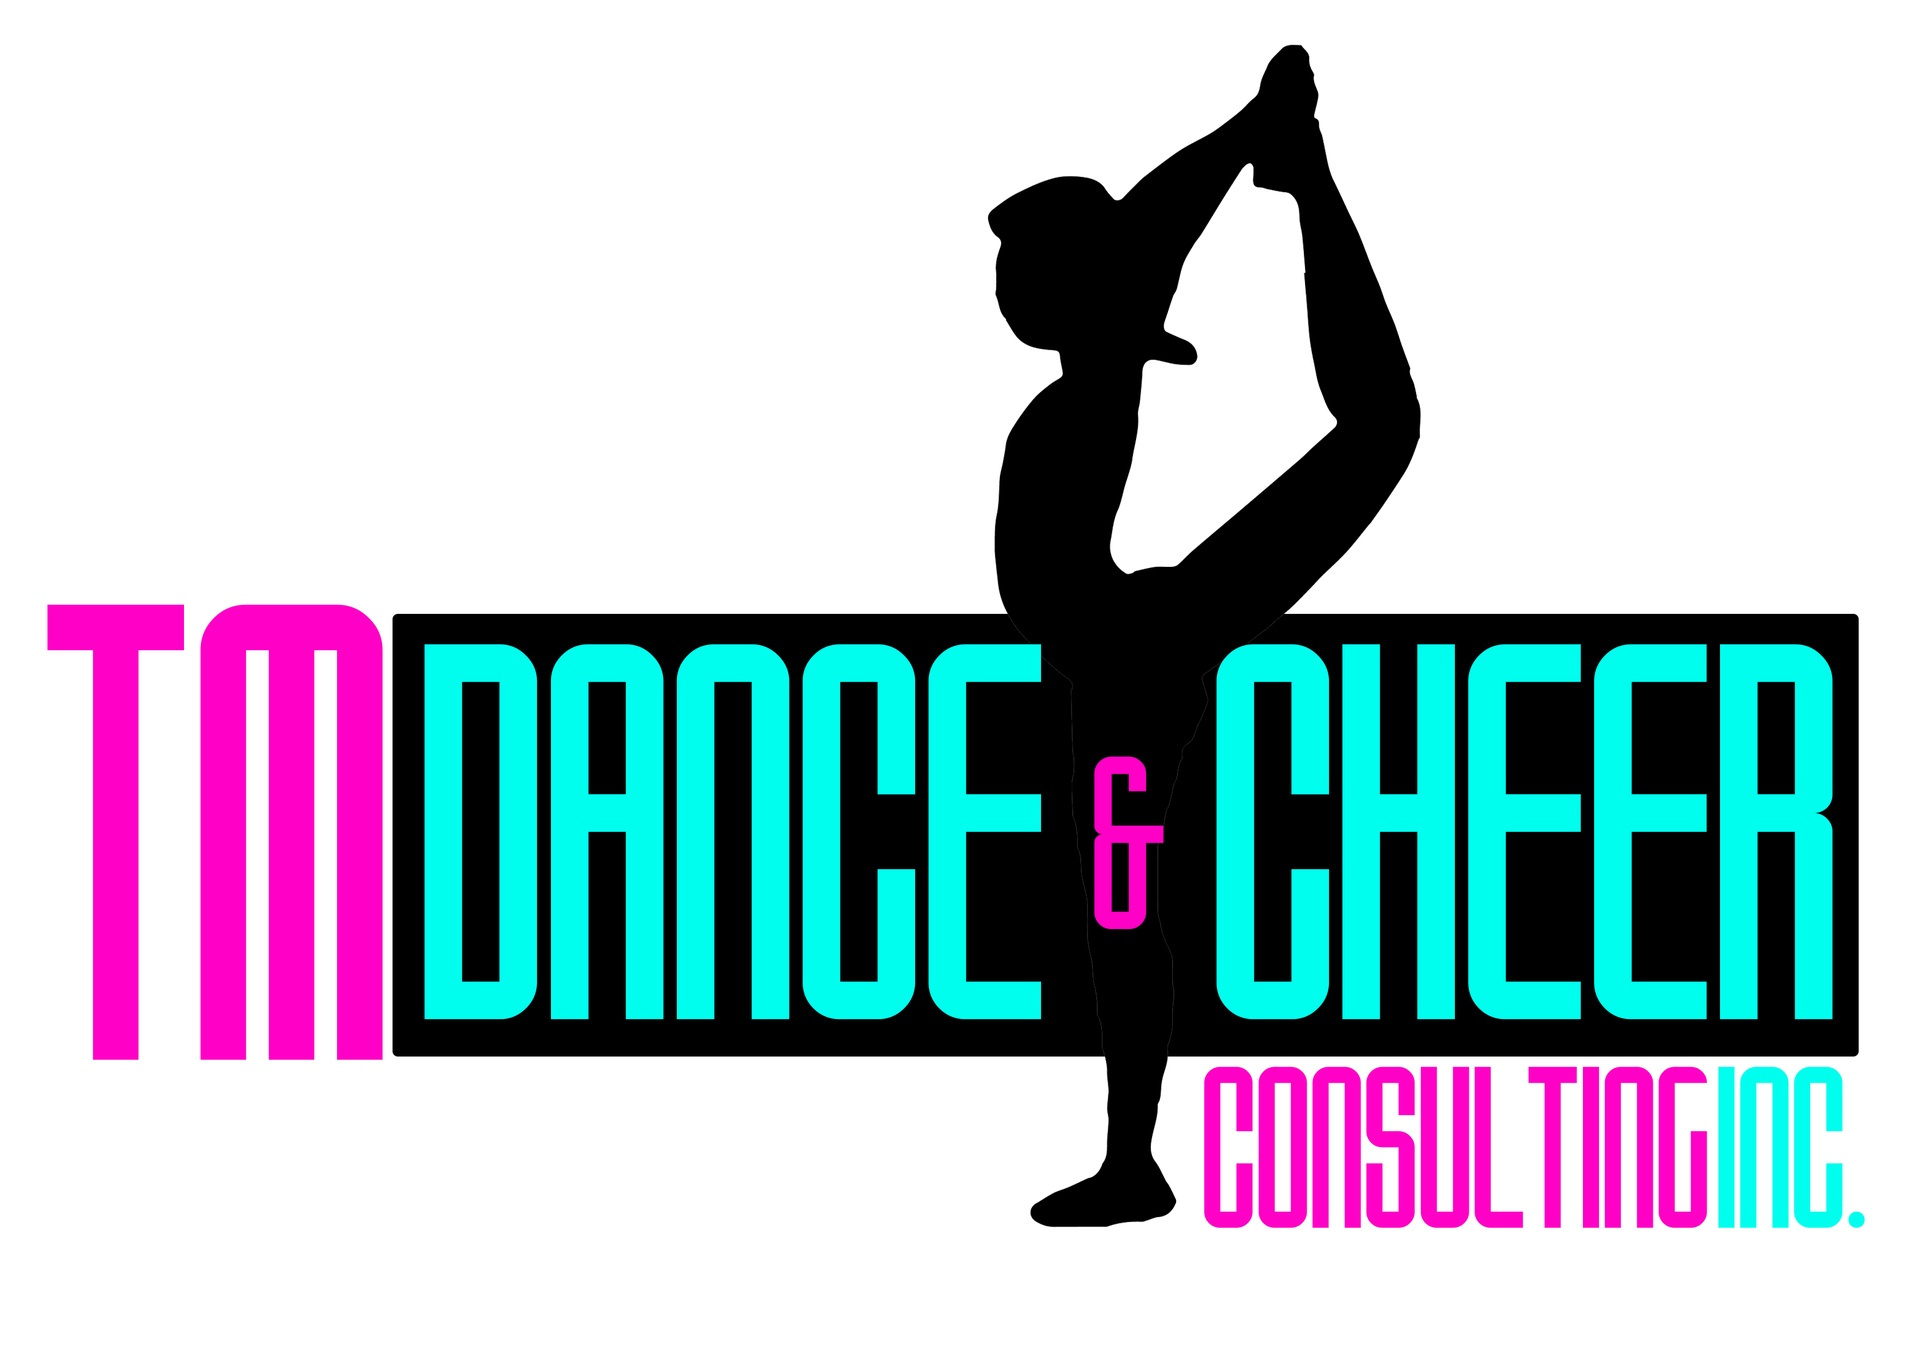 TM Dance & Cheer, Consulting Inc.